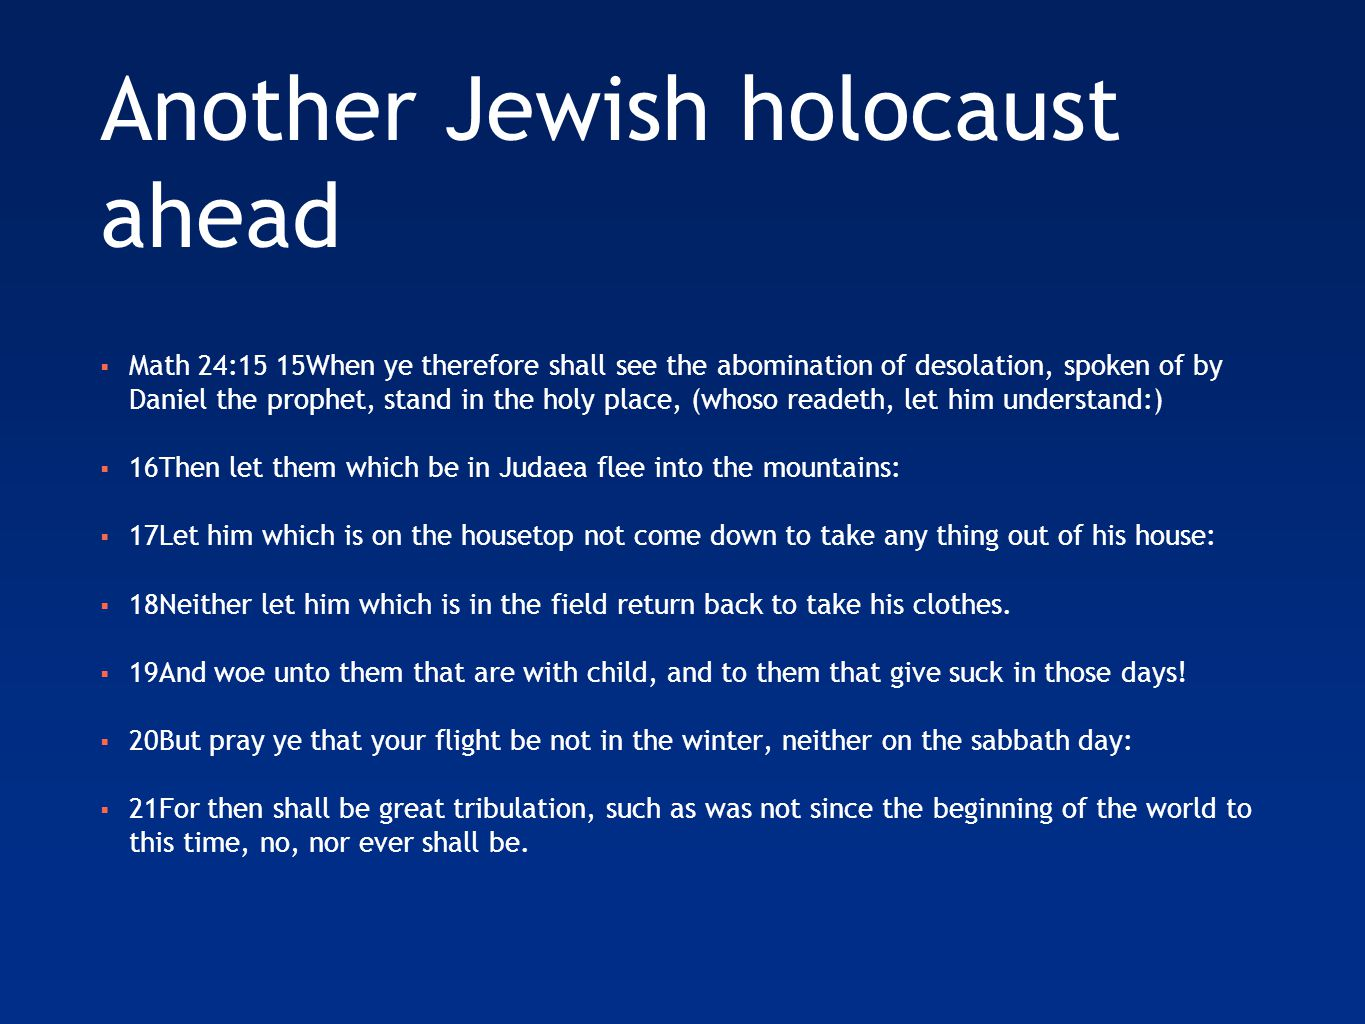 Another Jewish holocaust ahead  Math 24:15 15When ye therefore shall see the abomination of desolation, spoken of by Daniel the prophet, stand in the holy place, (whoso readeth, let him understand:)  16Then let them which be in Judaea flee into the mountains:  17Let him which is on the housetop not come down to take any thing out of his house:  18Neither let him which is in the field return back to take his clothes.